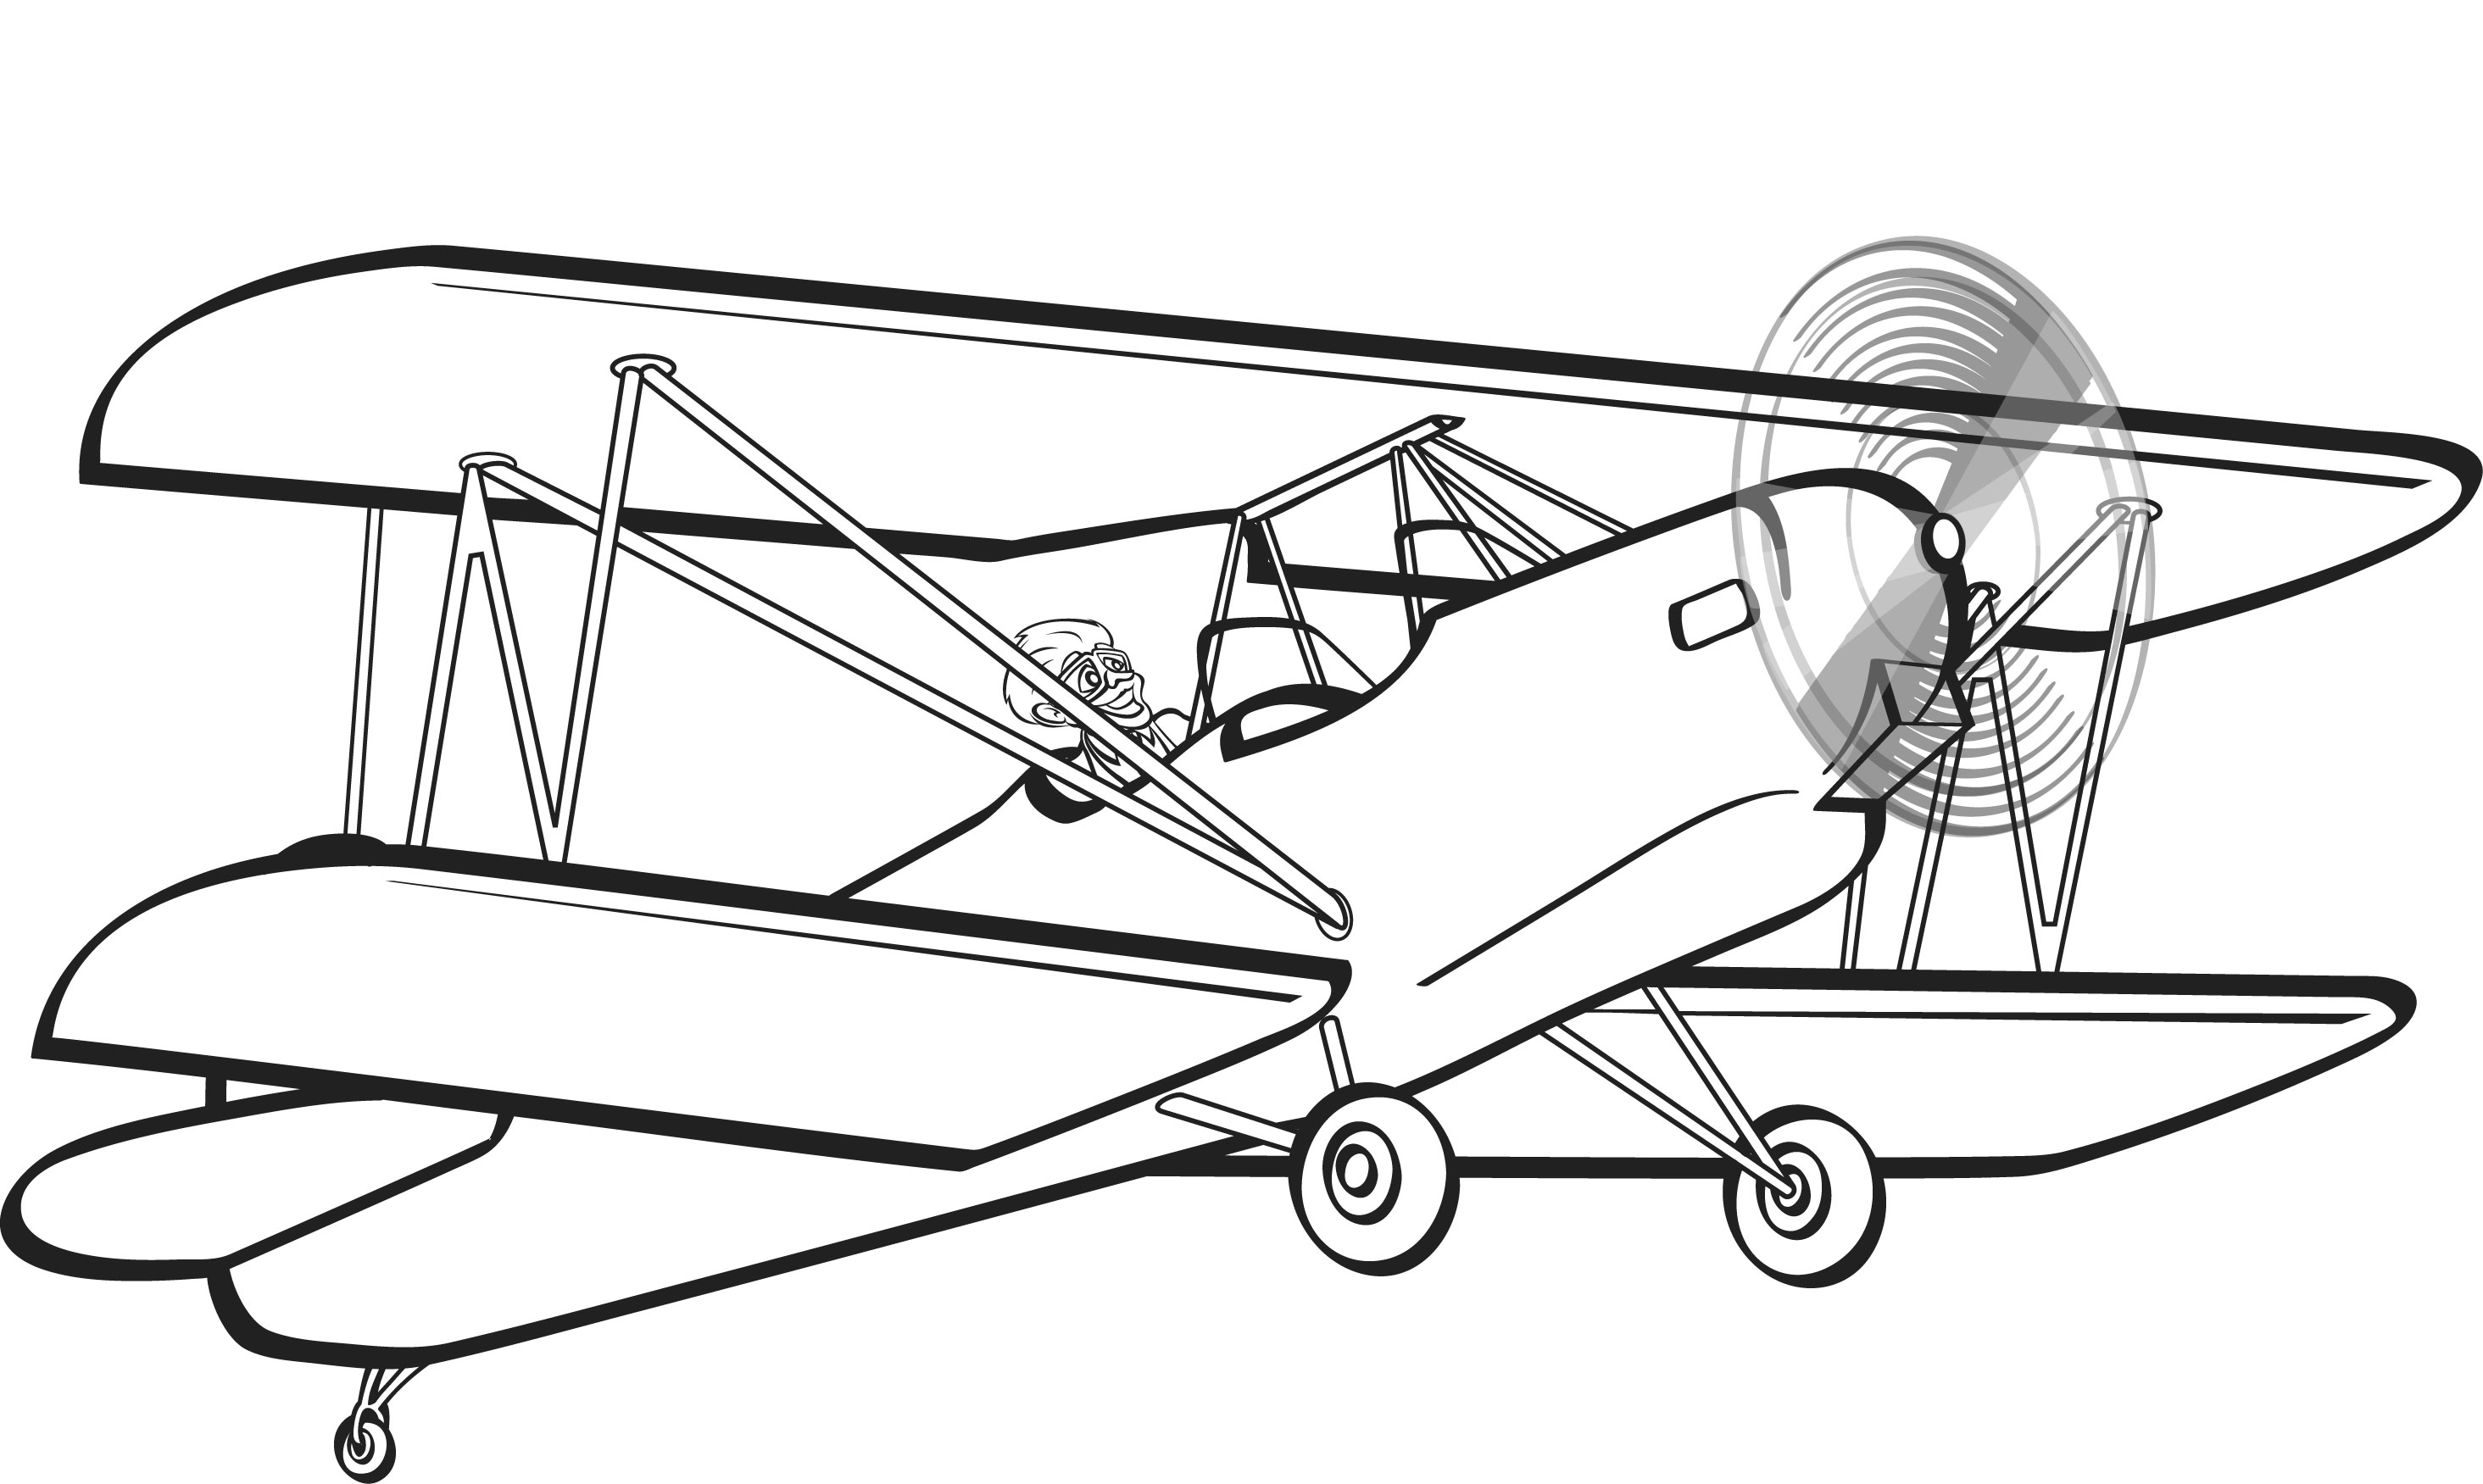 free vintage airplane coloring pages - photo#20